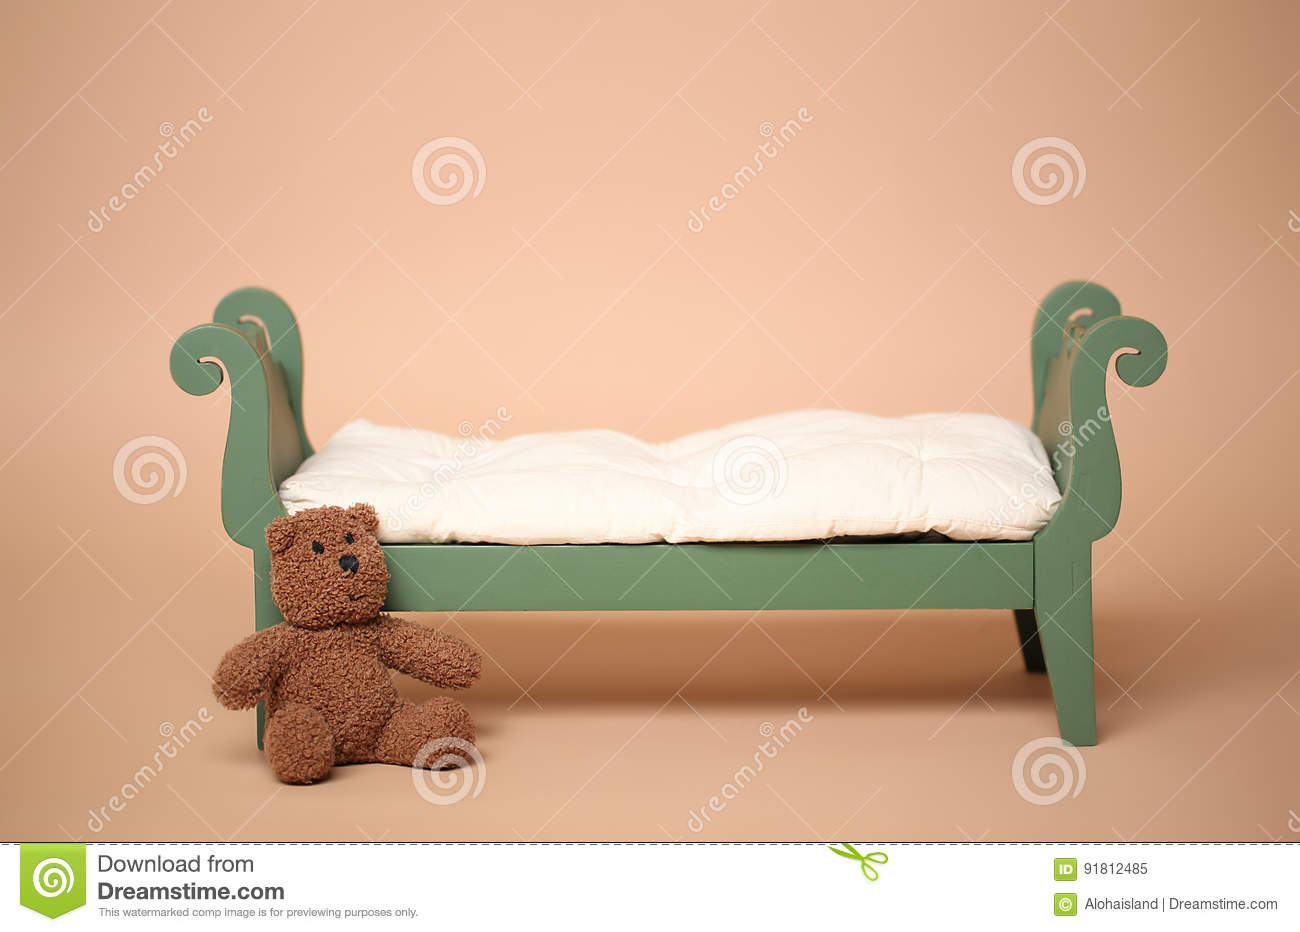 Digital background of isolated vintage baby bed on tan backdrop for use with newborn baby or child photography